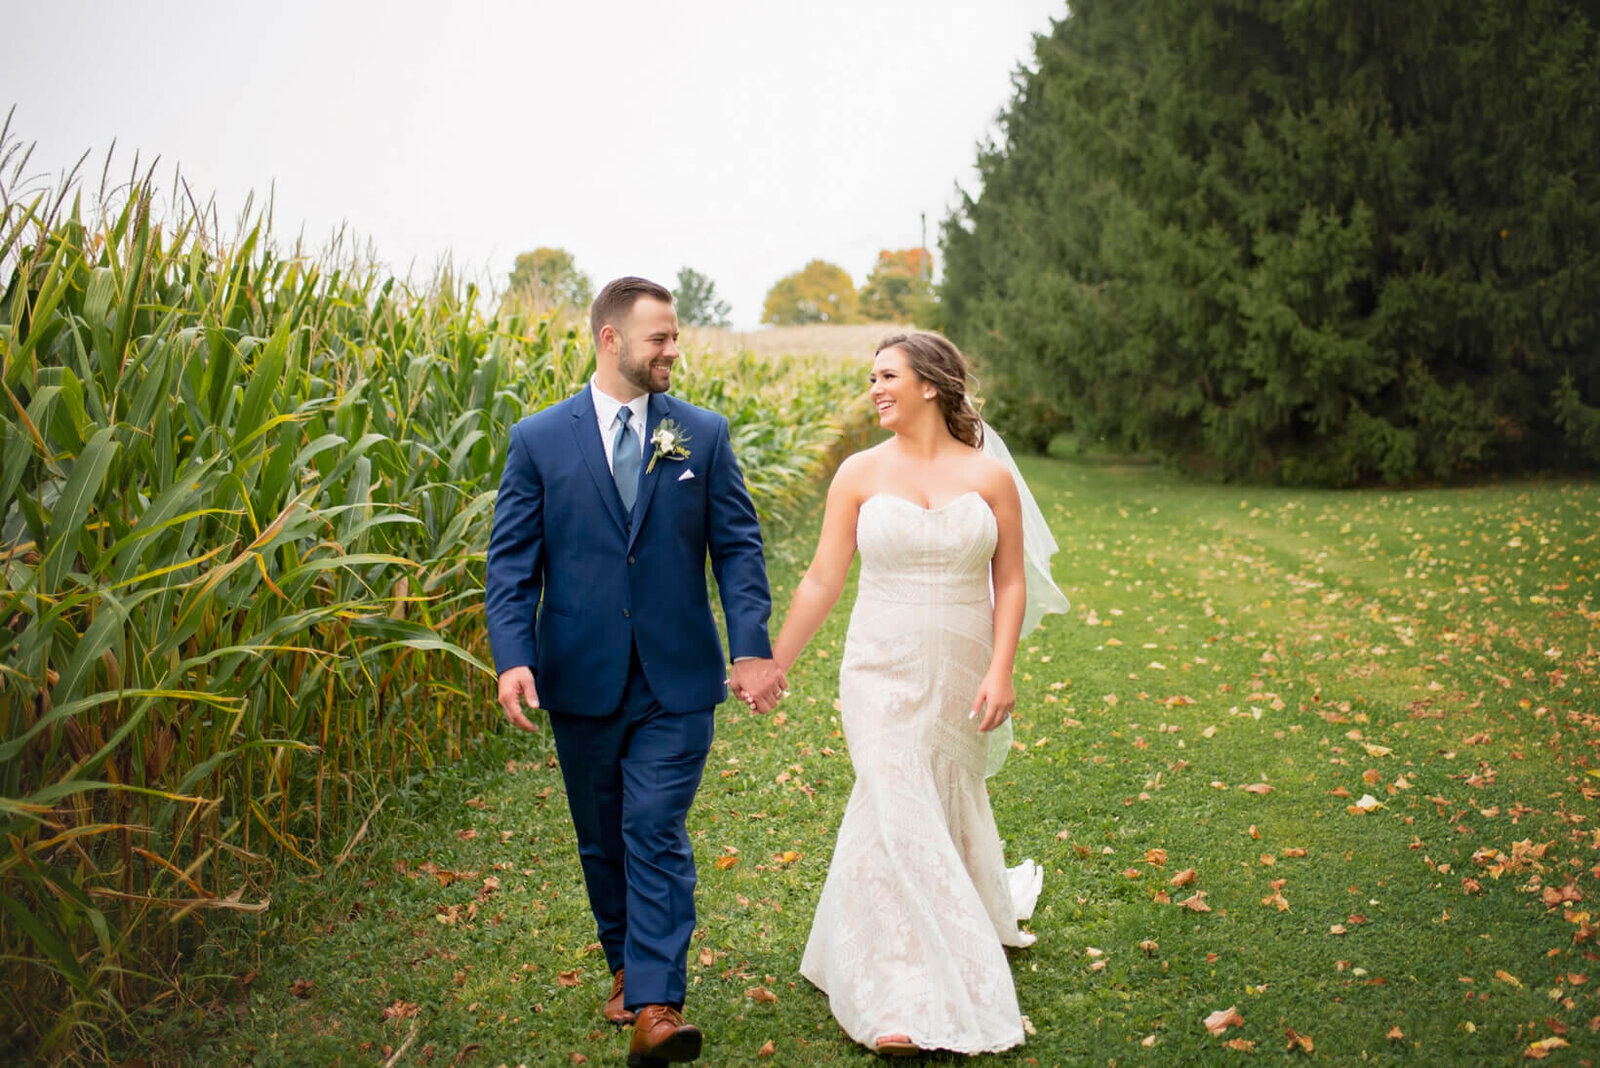 Sugar-Island-Barn-Wedding-Watertown-Wisconsin-107